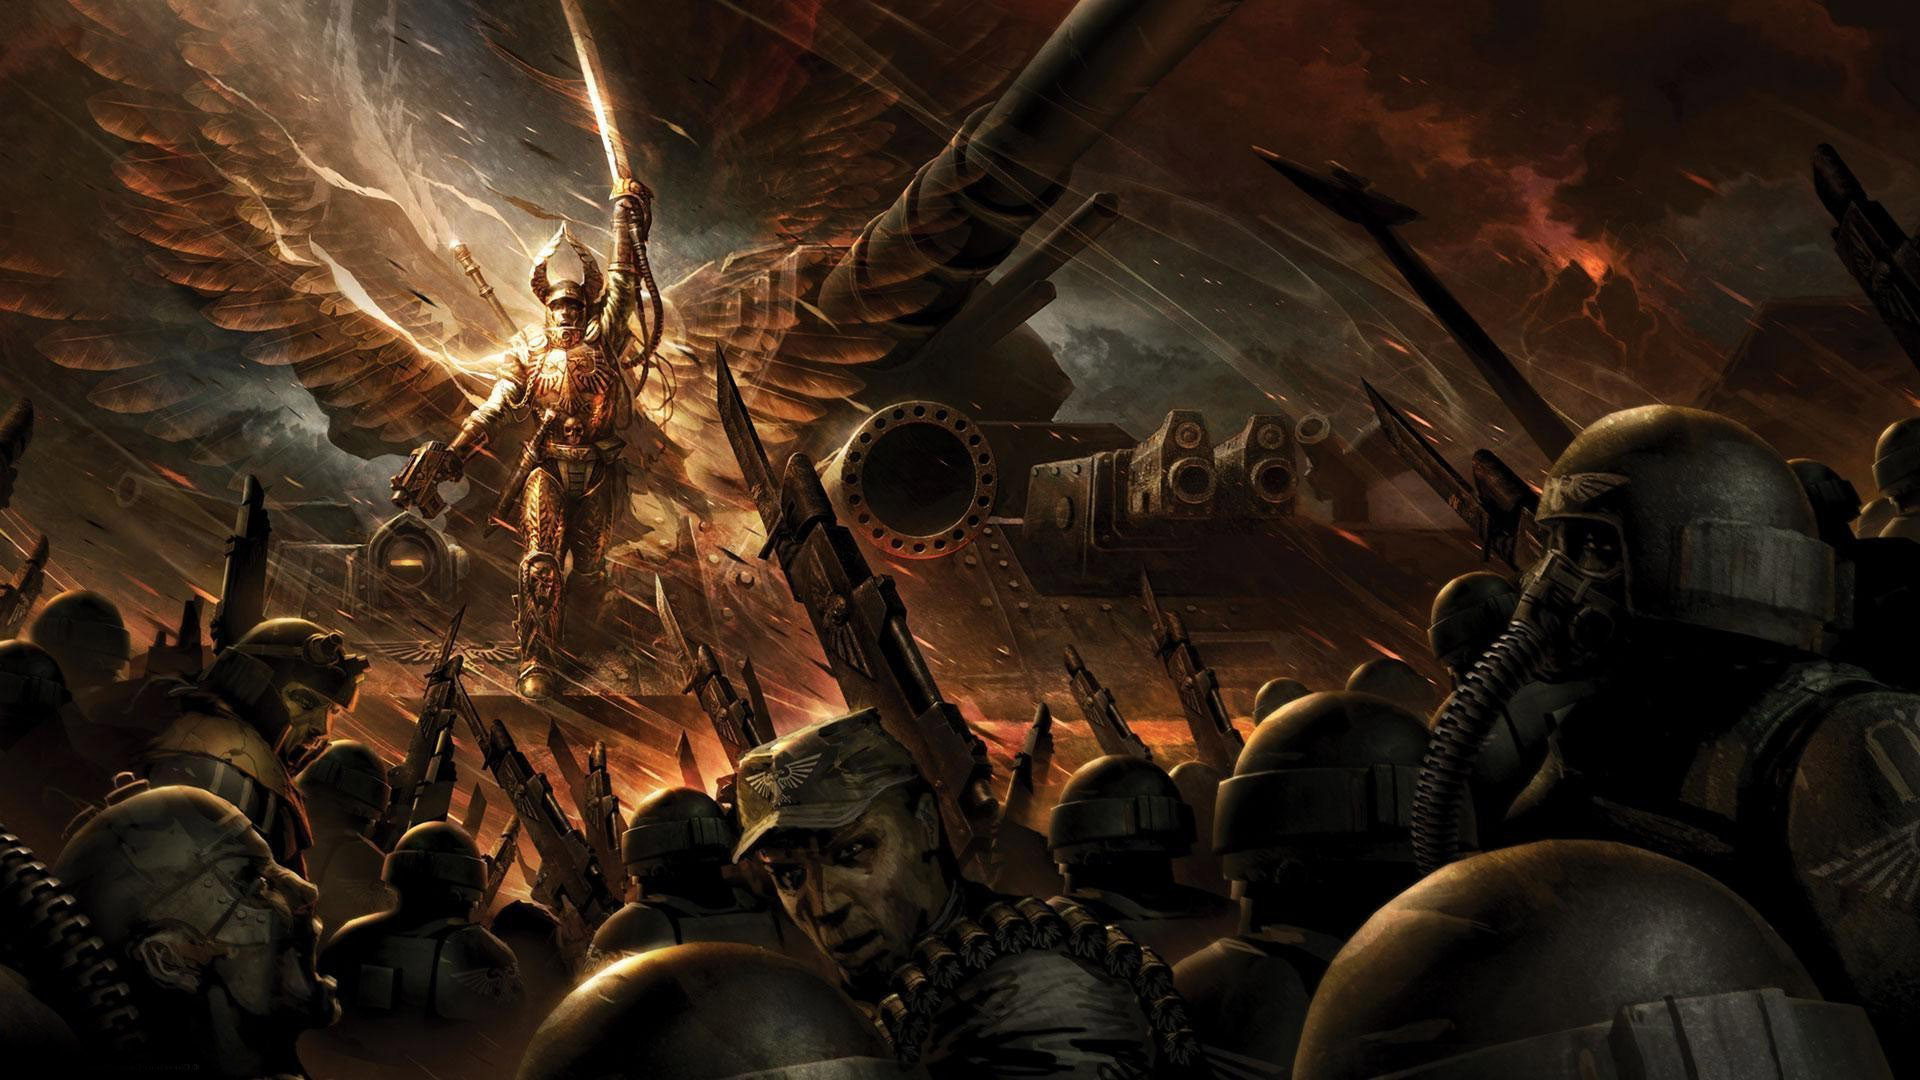 Imperial Guard   Warhammer 40000 wallpaper   1024098 1920x1080